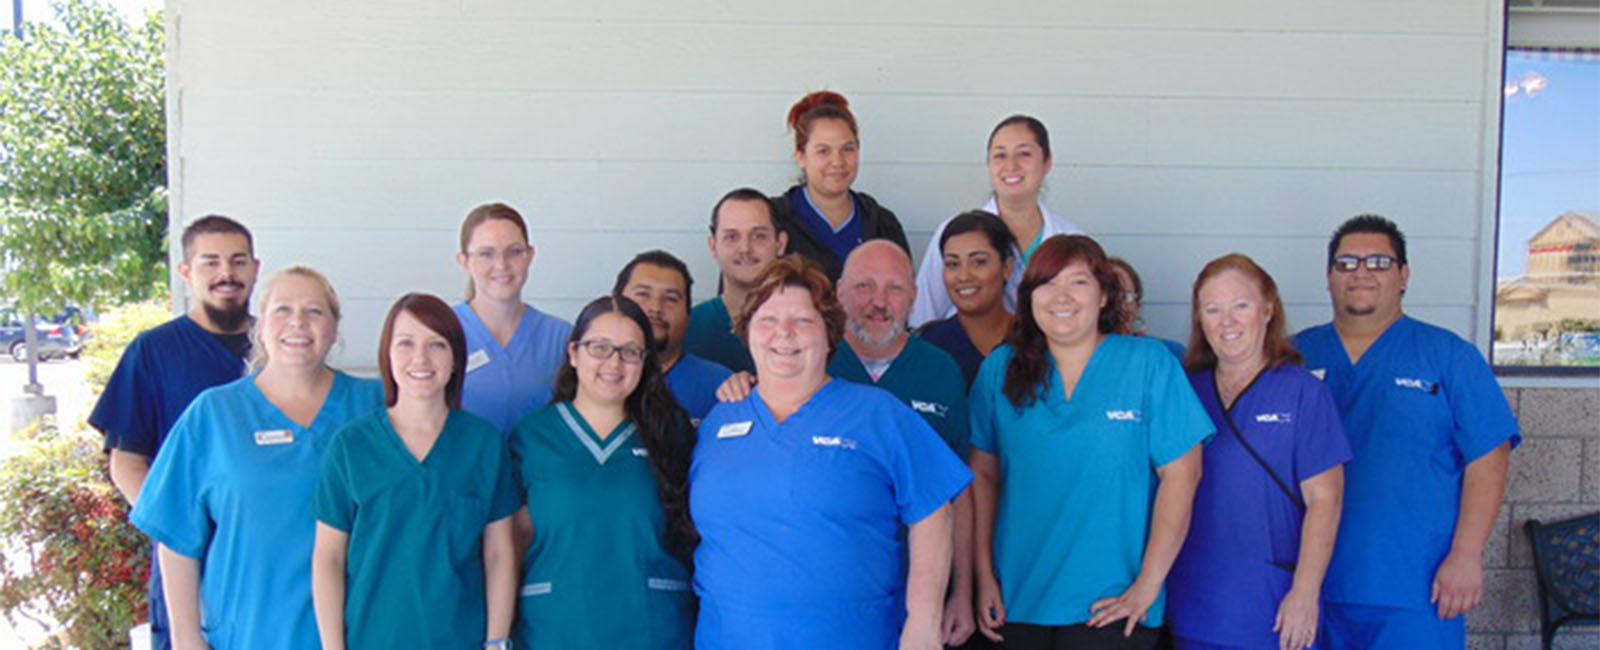 Homepage Team Picture of VCA Mesa Animal Hospital